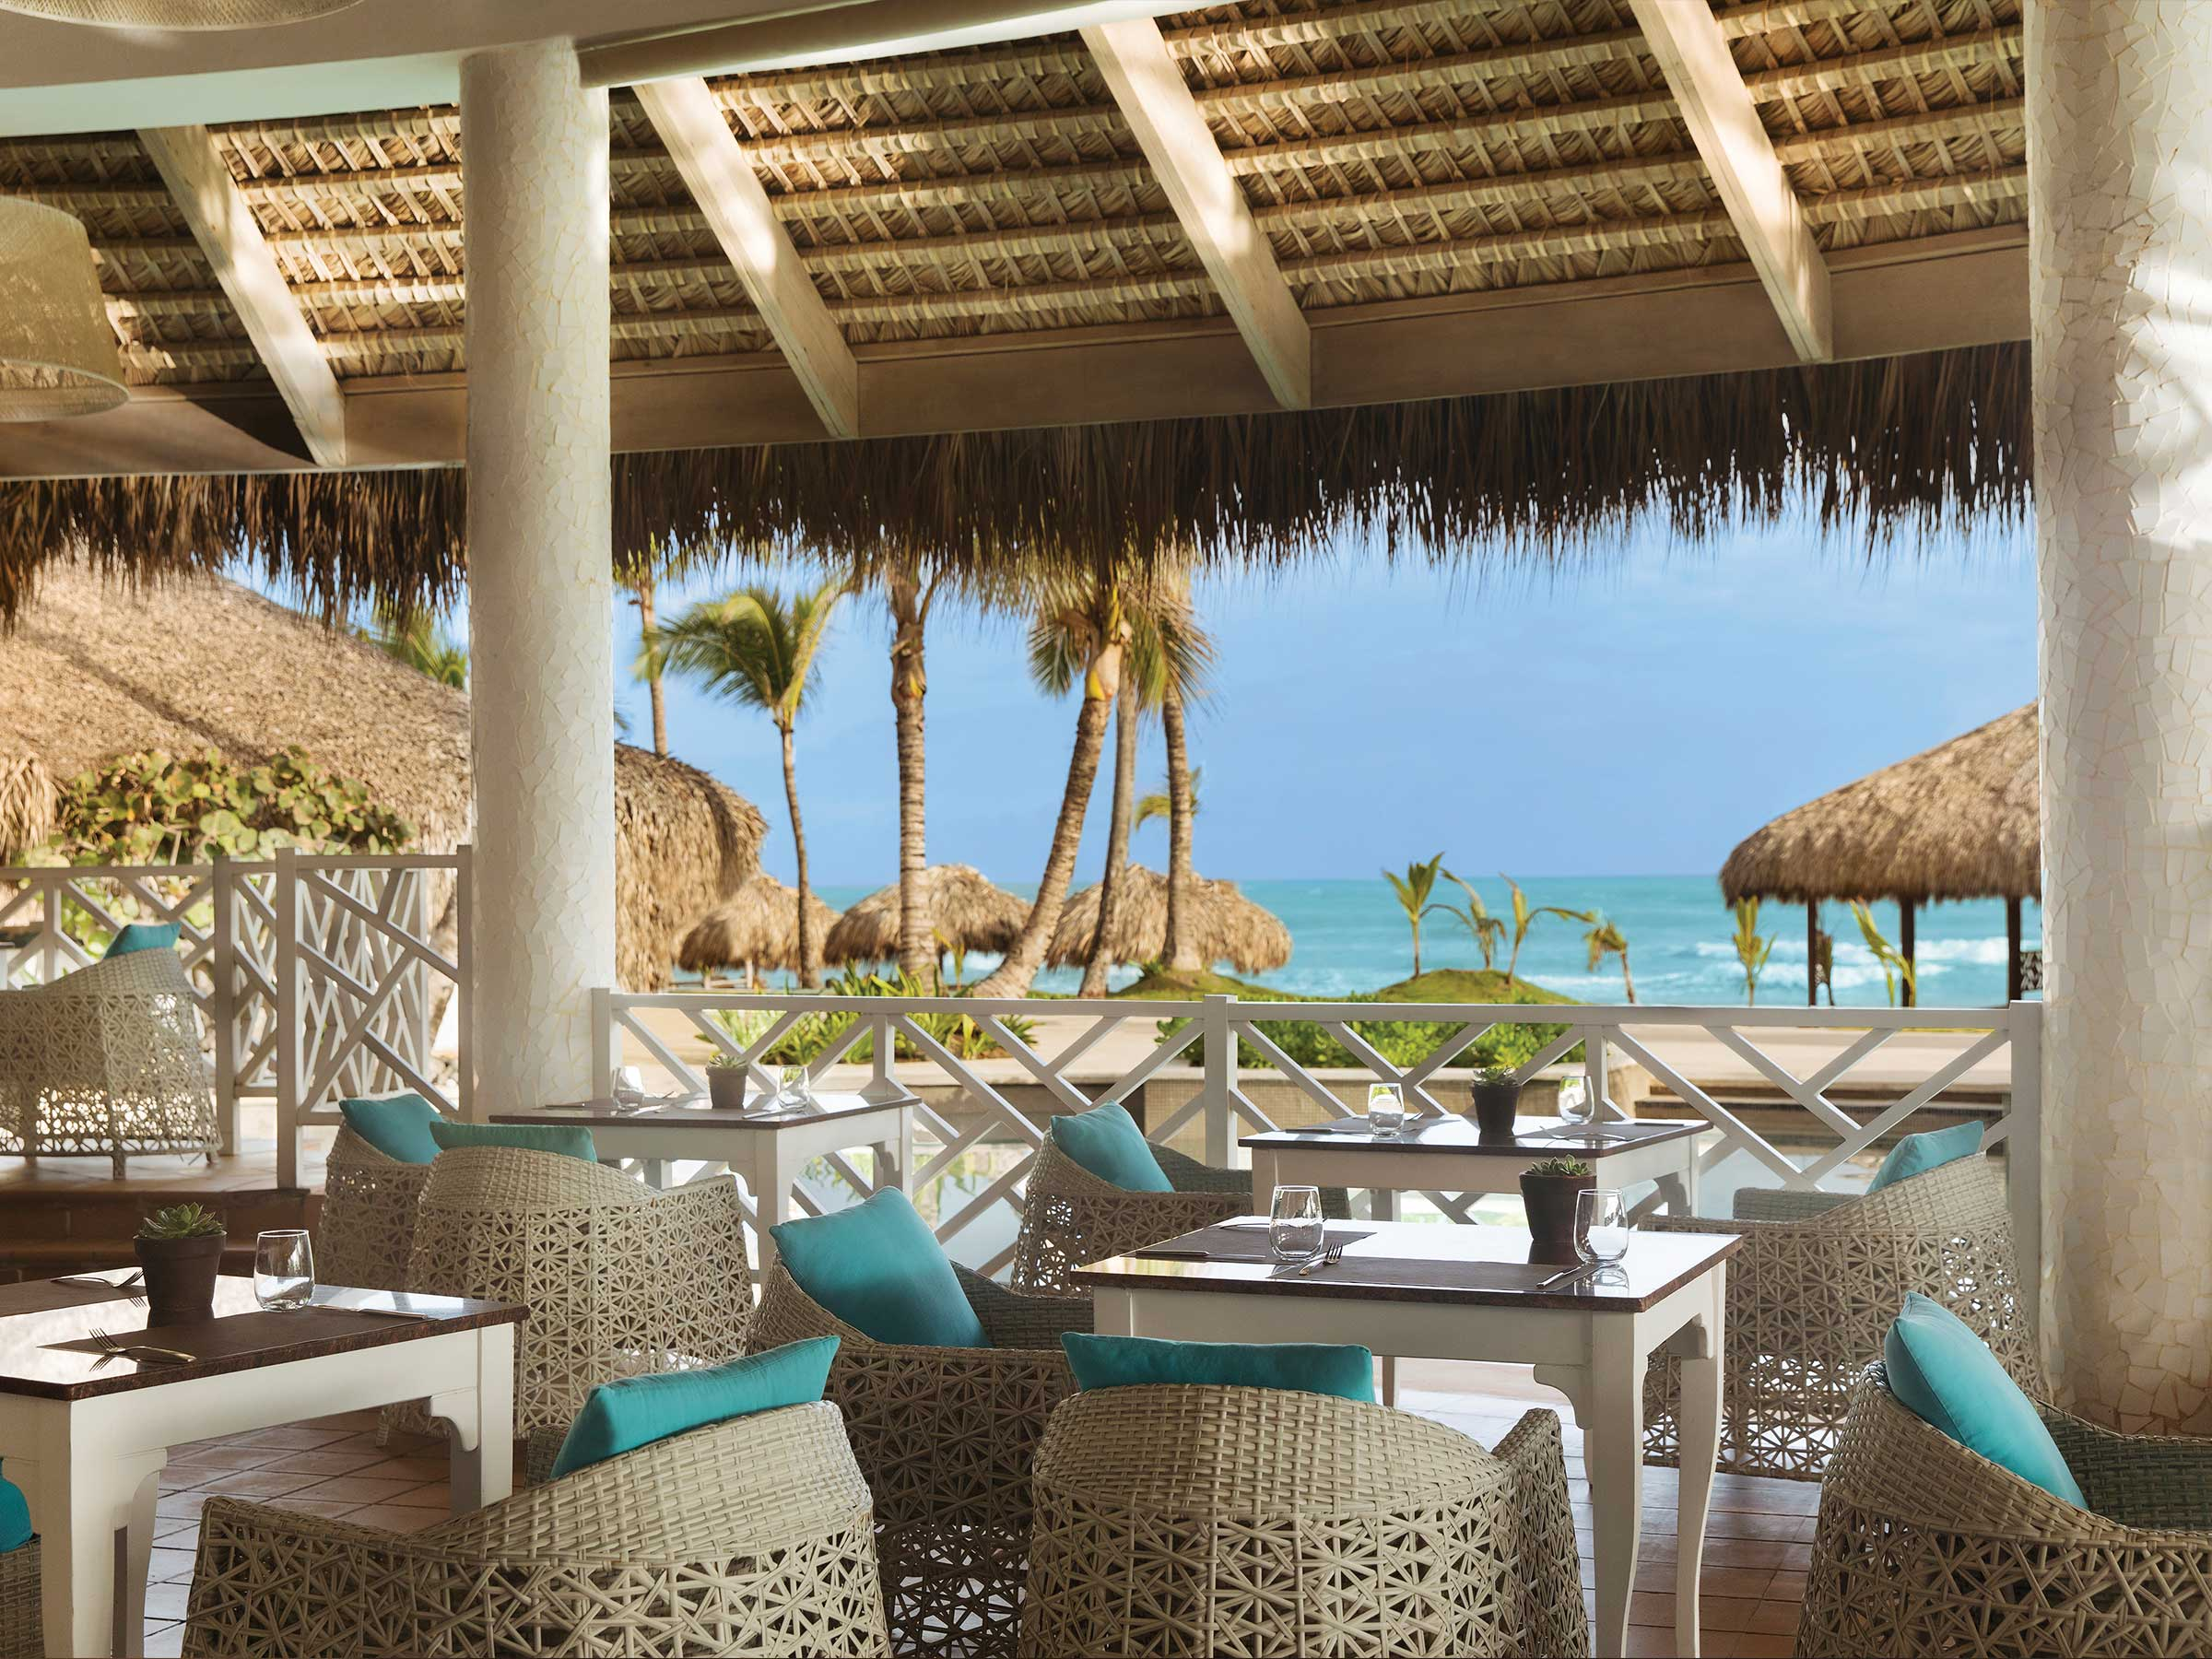 One of the Best Italian Restaurants in Punta Cana with an Ocean View